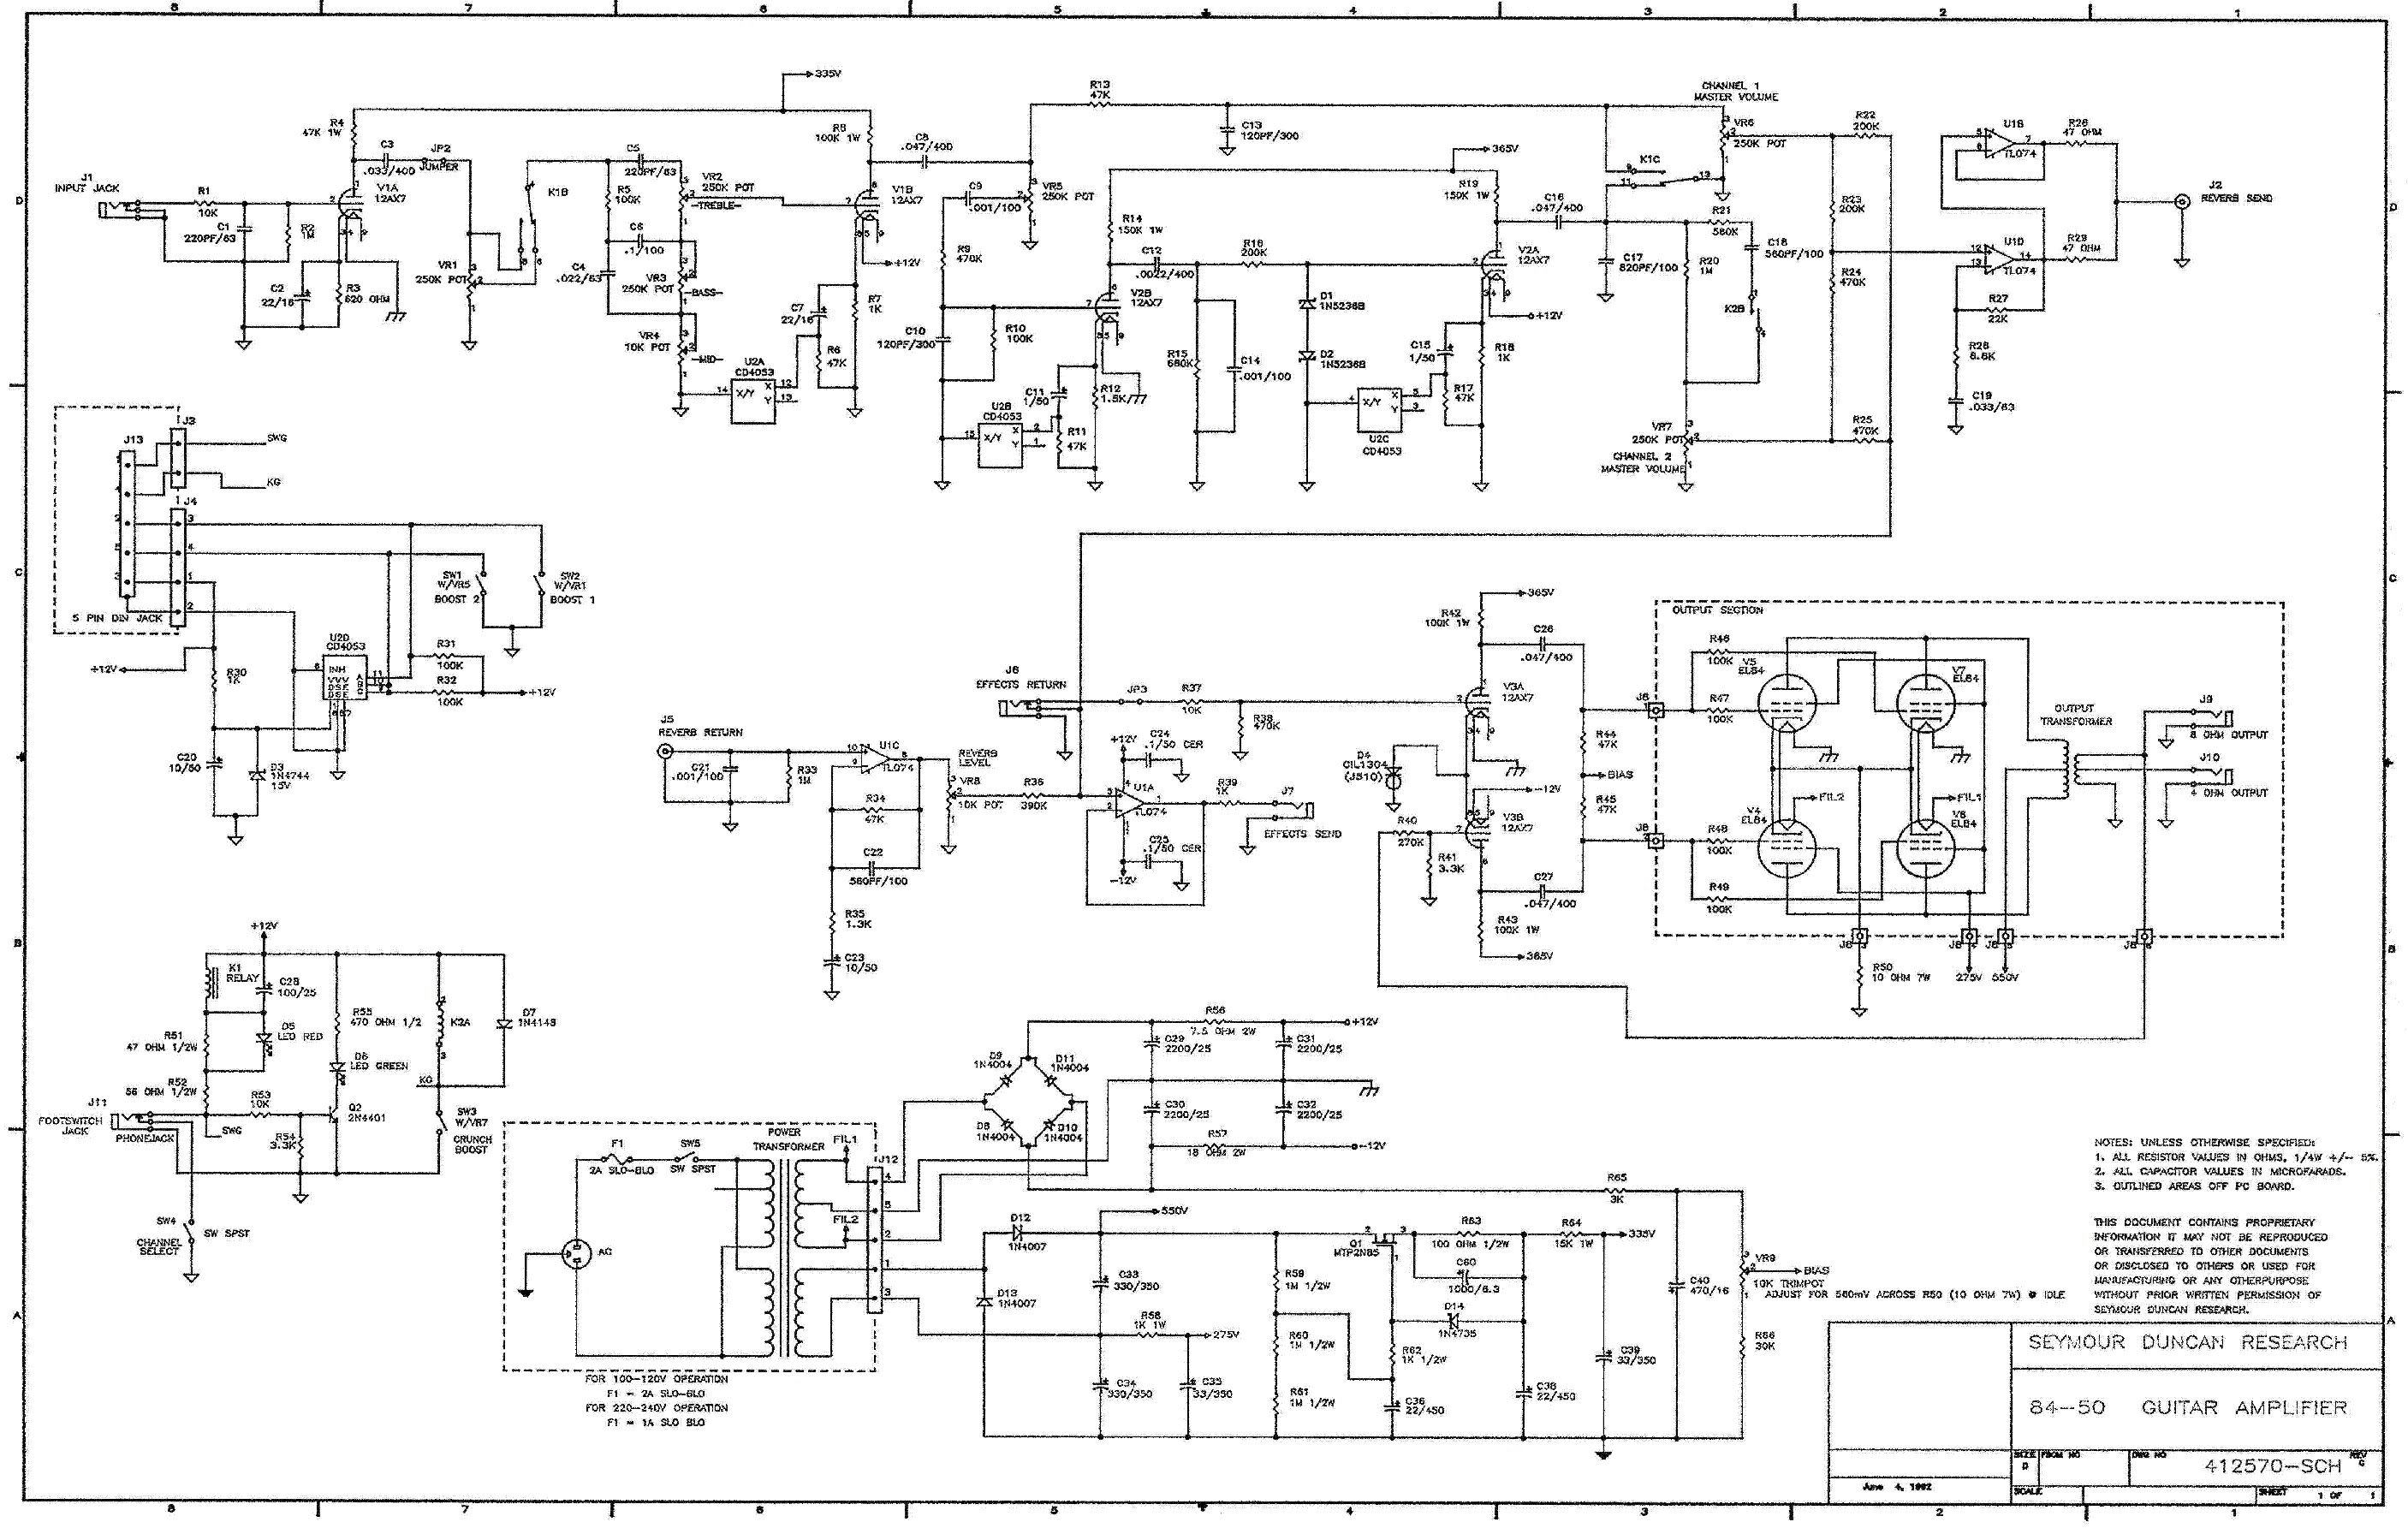 Seymour Duncan Schematics Library Of Wiring Diagrams \u2022 Fender  Telecaster 3-Way Wiring Diagram Wiring Diagrams Seymour Duncan Telecaster  Guitar